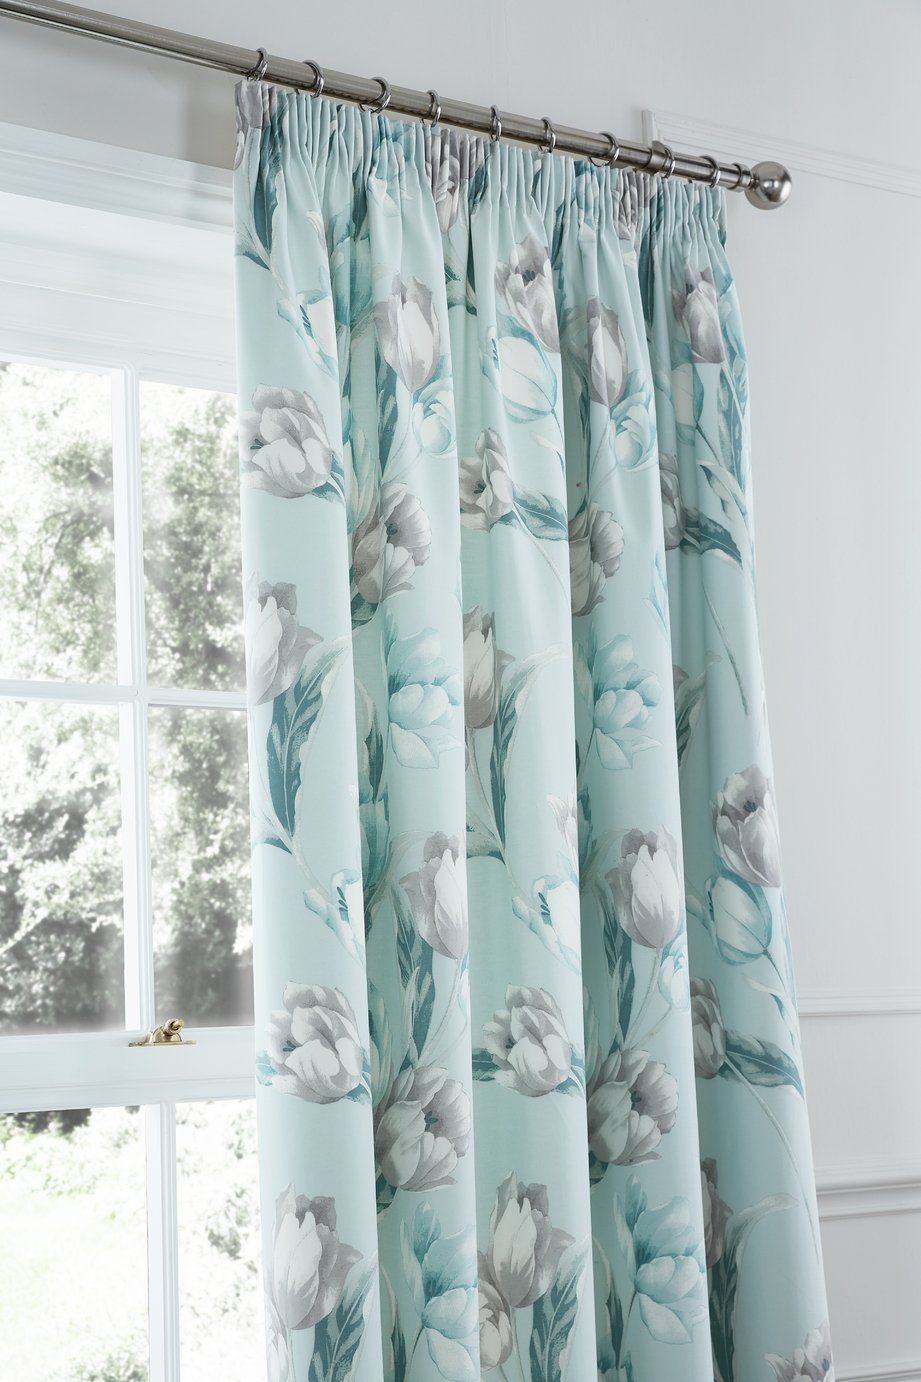 Tulip Lined Pencil Pleat Curtains - 168x183cm - Duck Egg